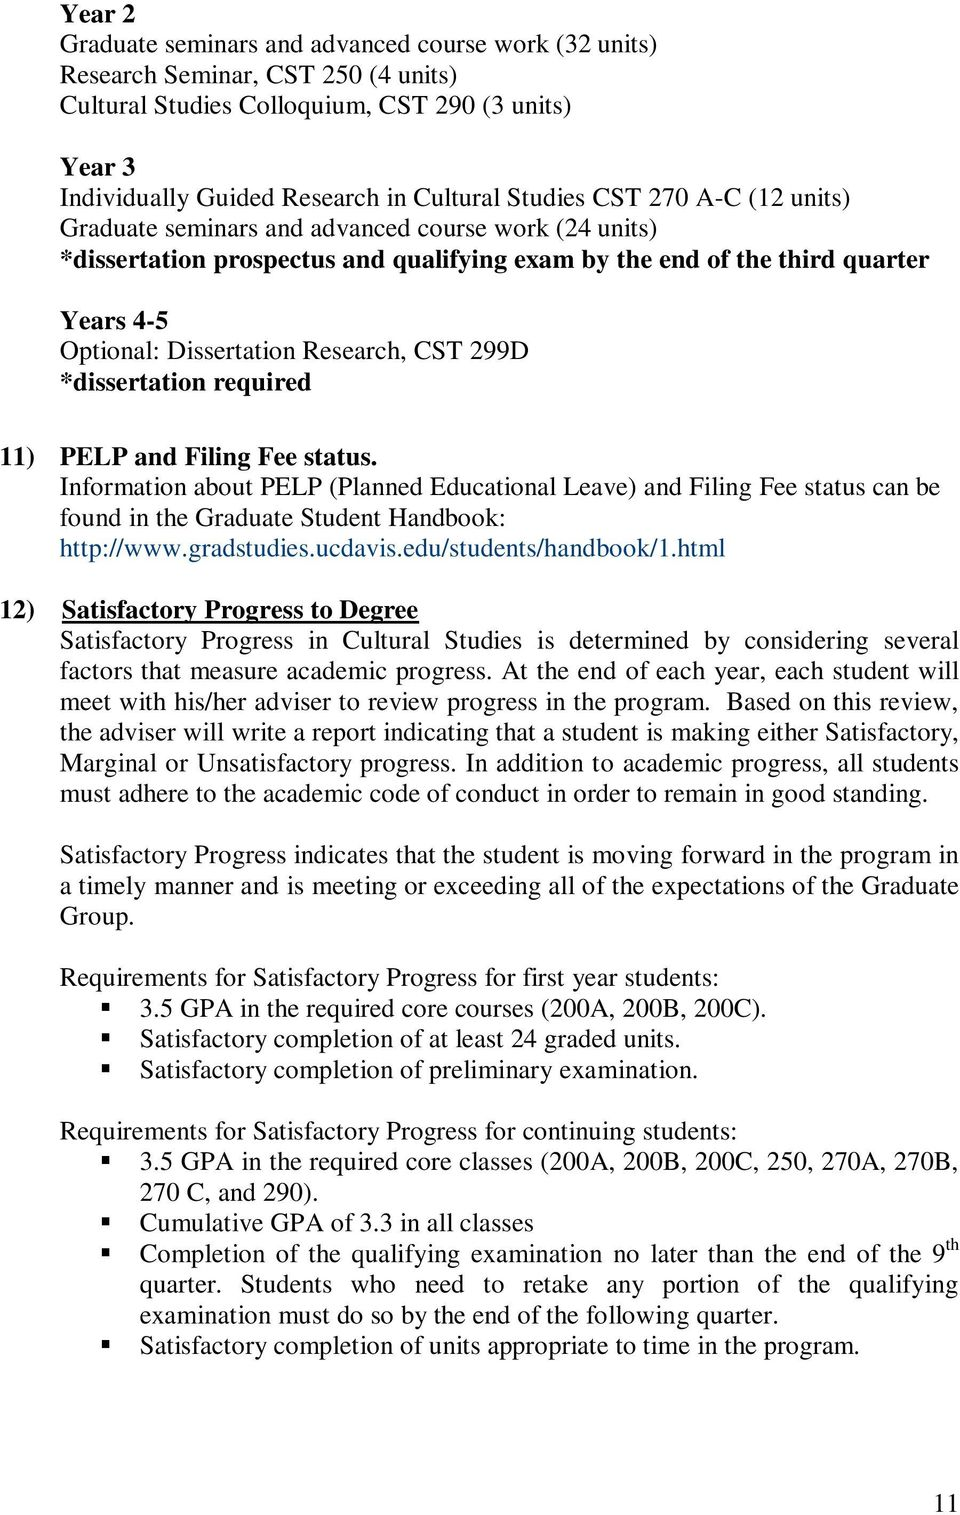 CST 299D *dissertation required 11) PELP and Filing Fee status. Information about PELP (Planned Educational Leave) and Filing Fee status can be found in the Graduate Student Handbook: http://www.